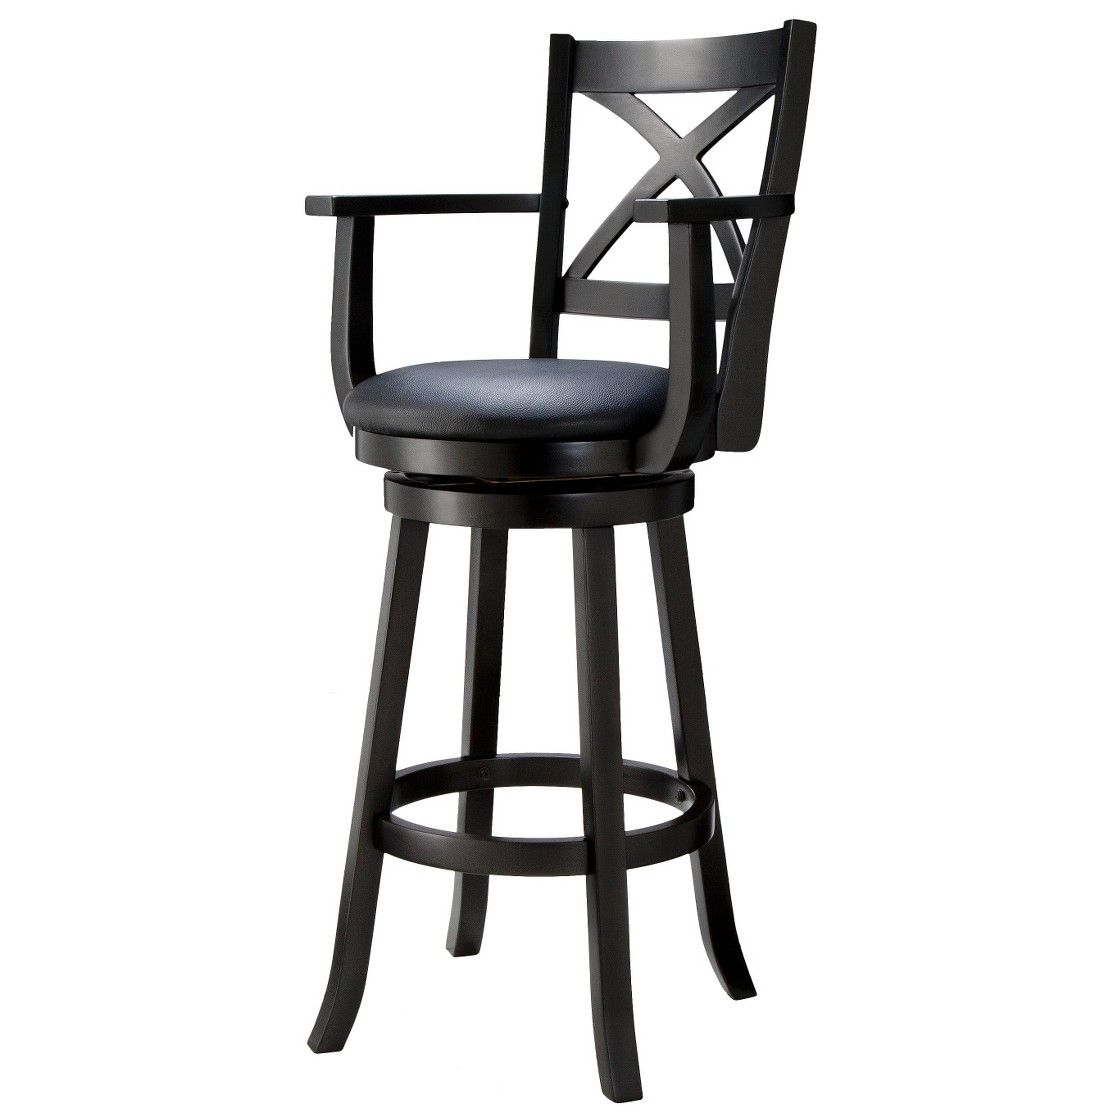 Sensational 29 Emerson X Back Swivel Bar Stool Black Design Black Ibusinesslaw Wood Chair Design Ideas Ibusinesslaworg